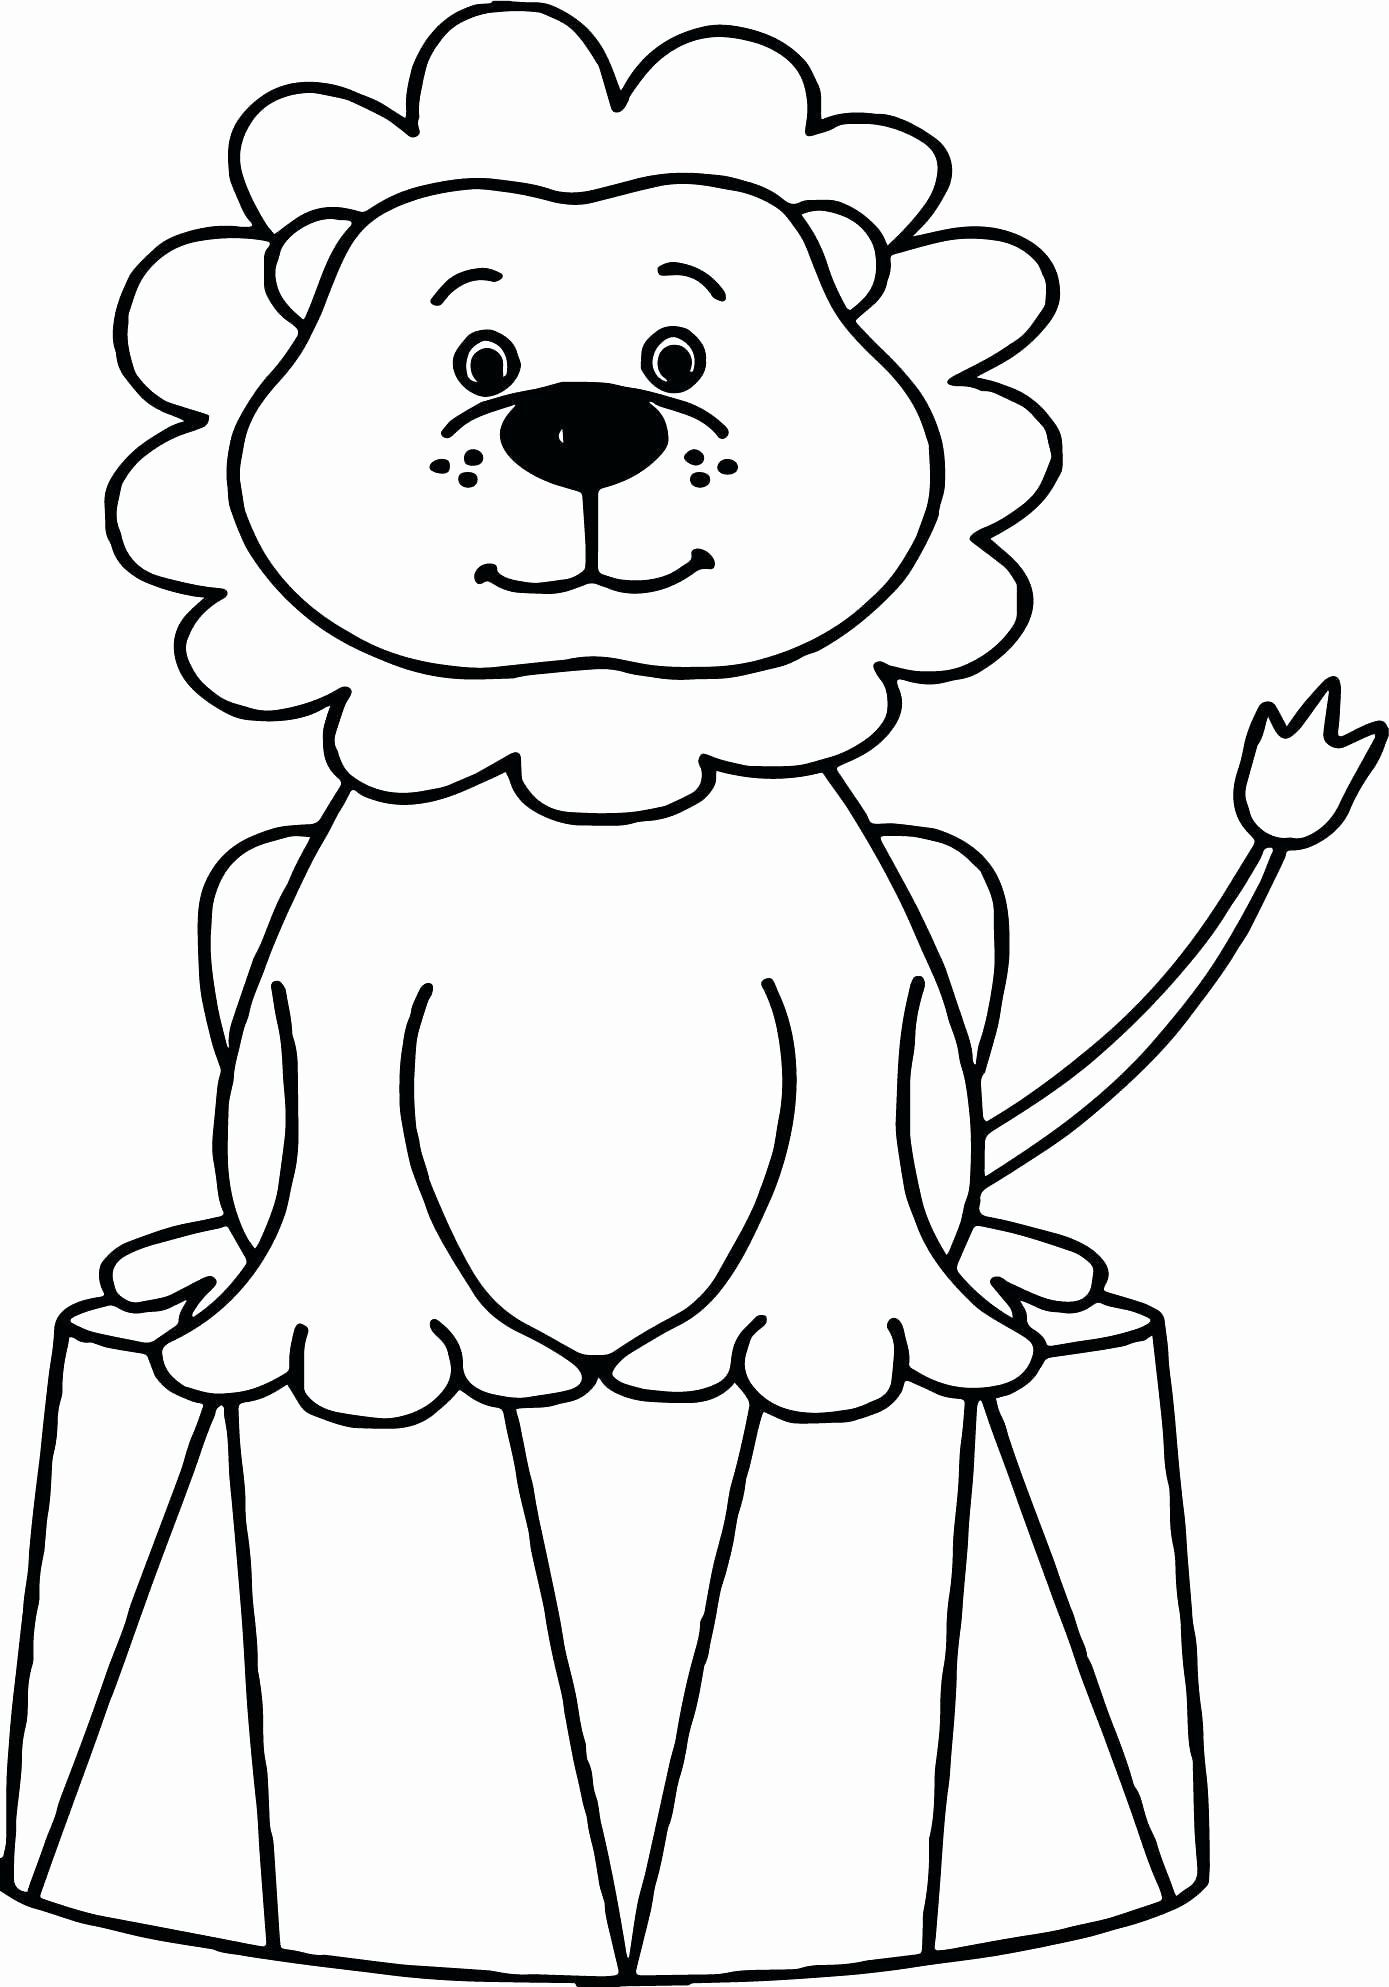 Animal Coloring Book Lion Lovely Circus Coloring Sheets Spineprint In 2020 Lion Coloring Pages Animal Coloring Books Animal Coloring Pages